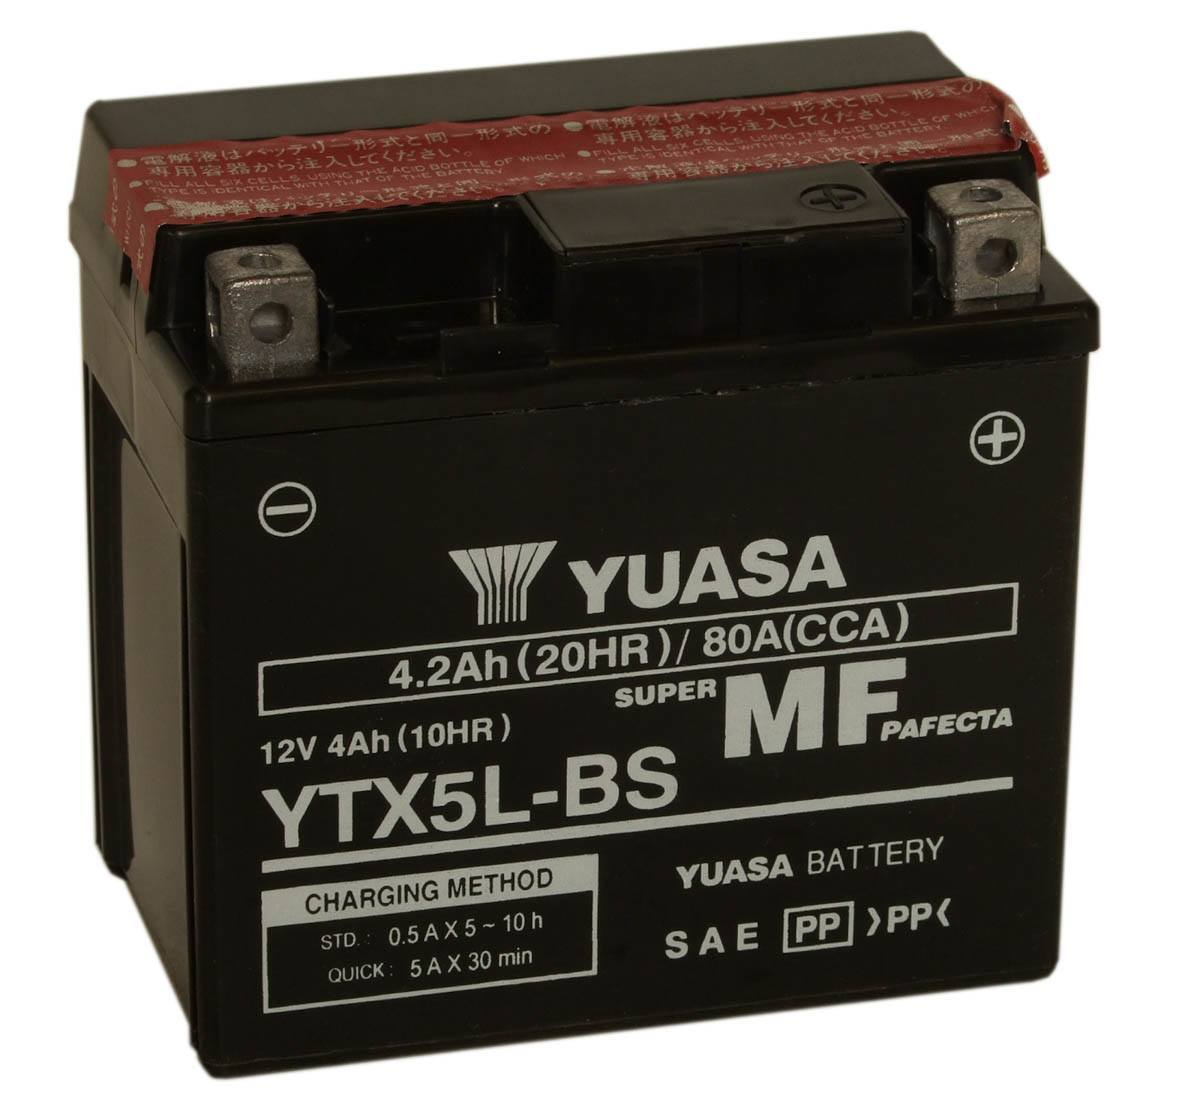 Get it delivered to your door - Yuasa YTX5L-BS Battery (Taiwan) - 695 (EGP)